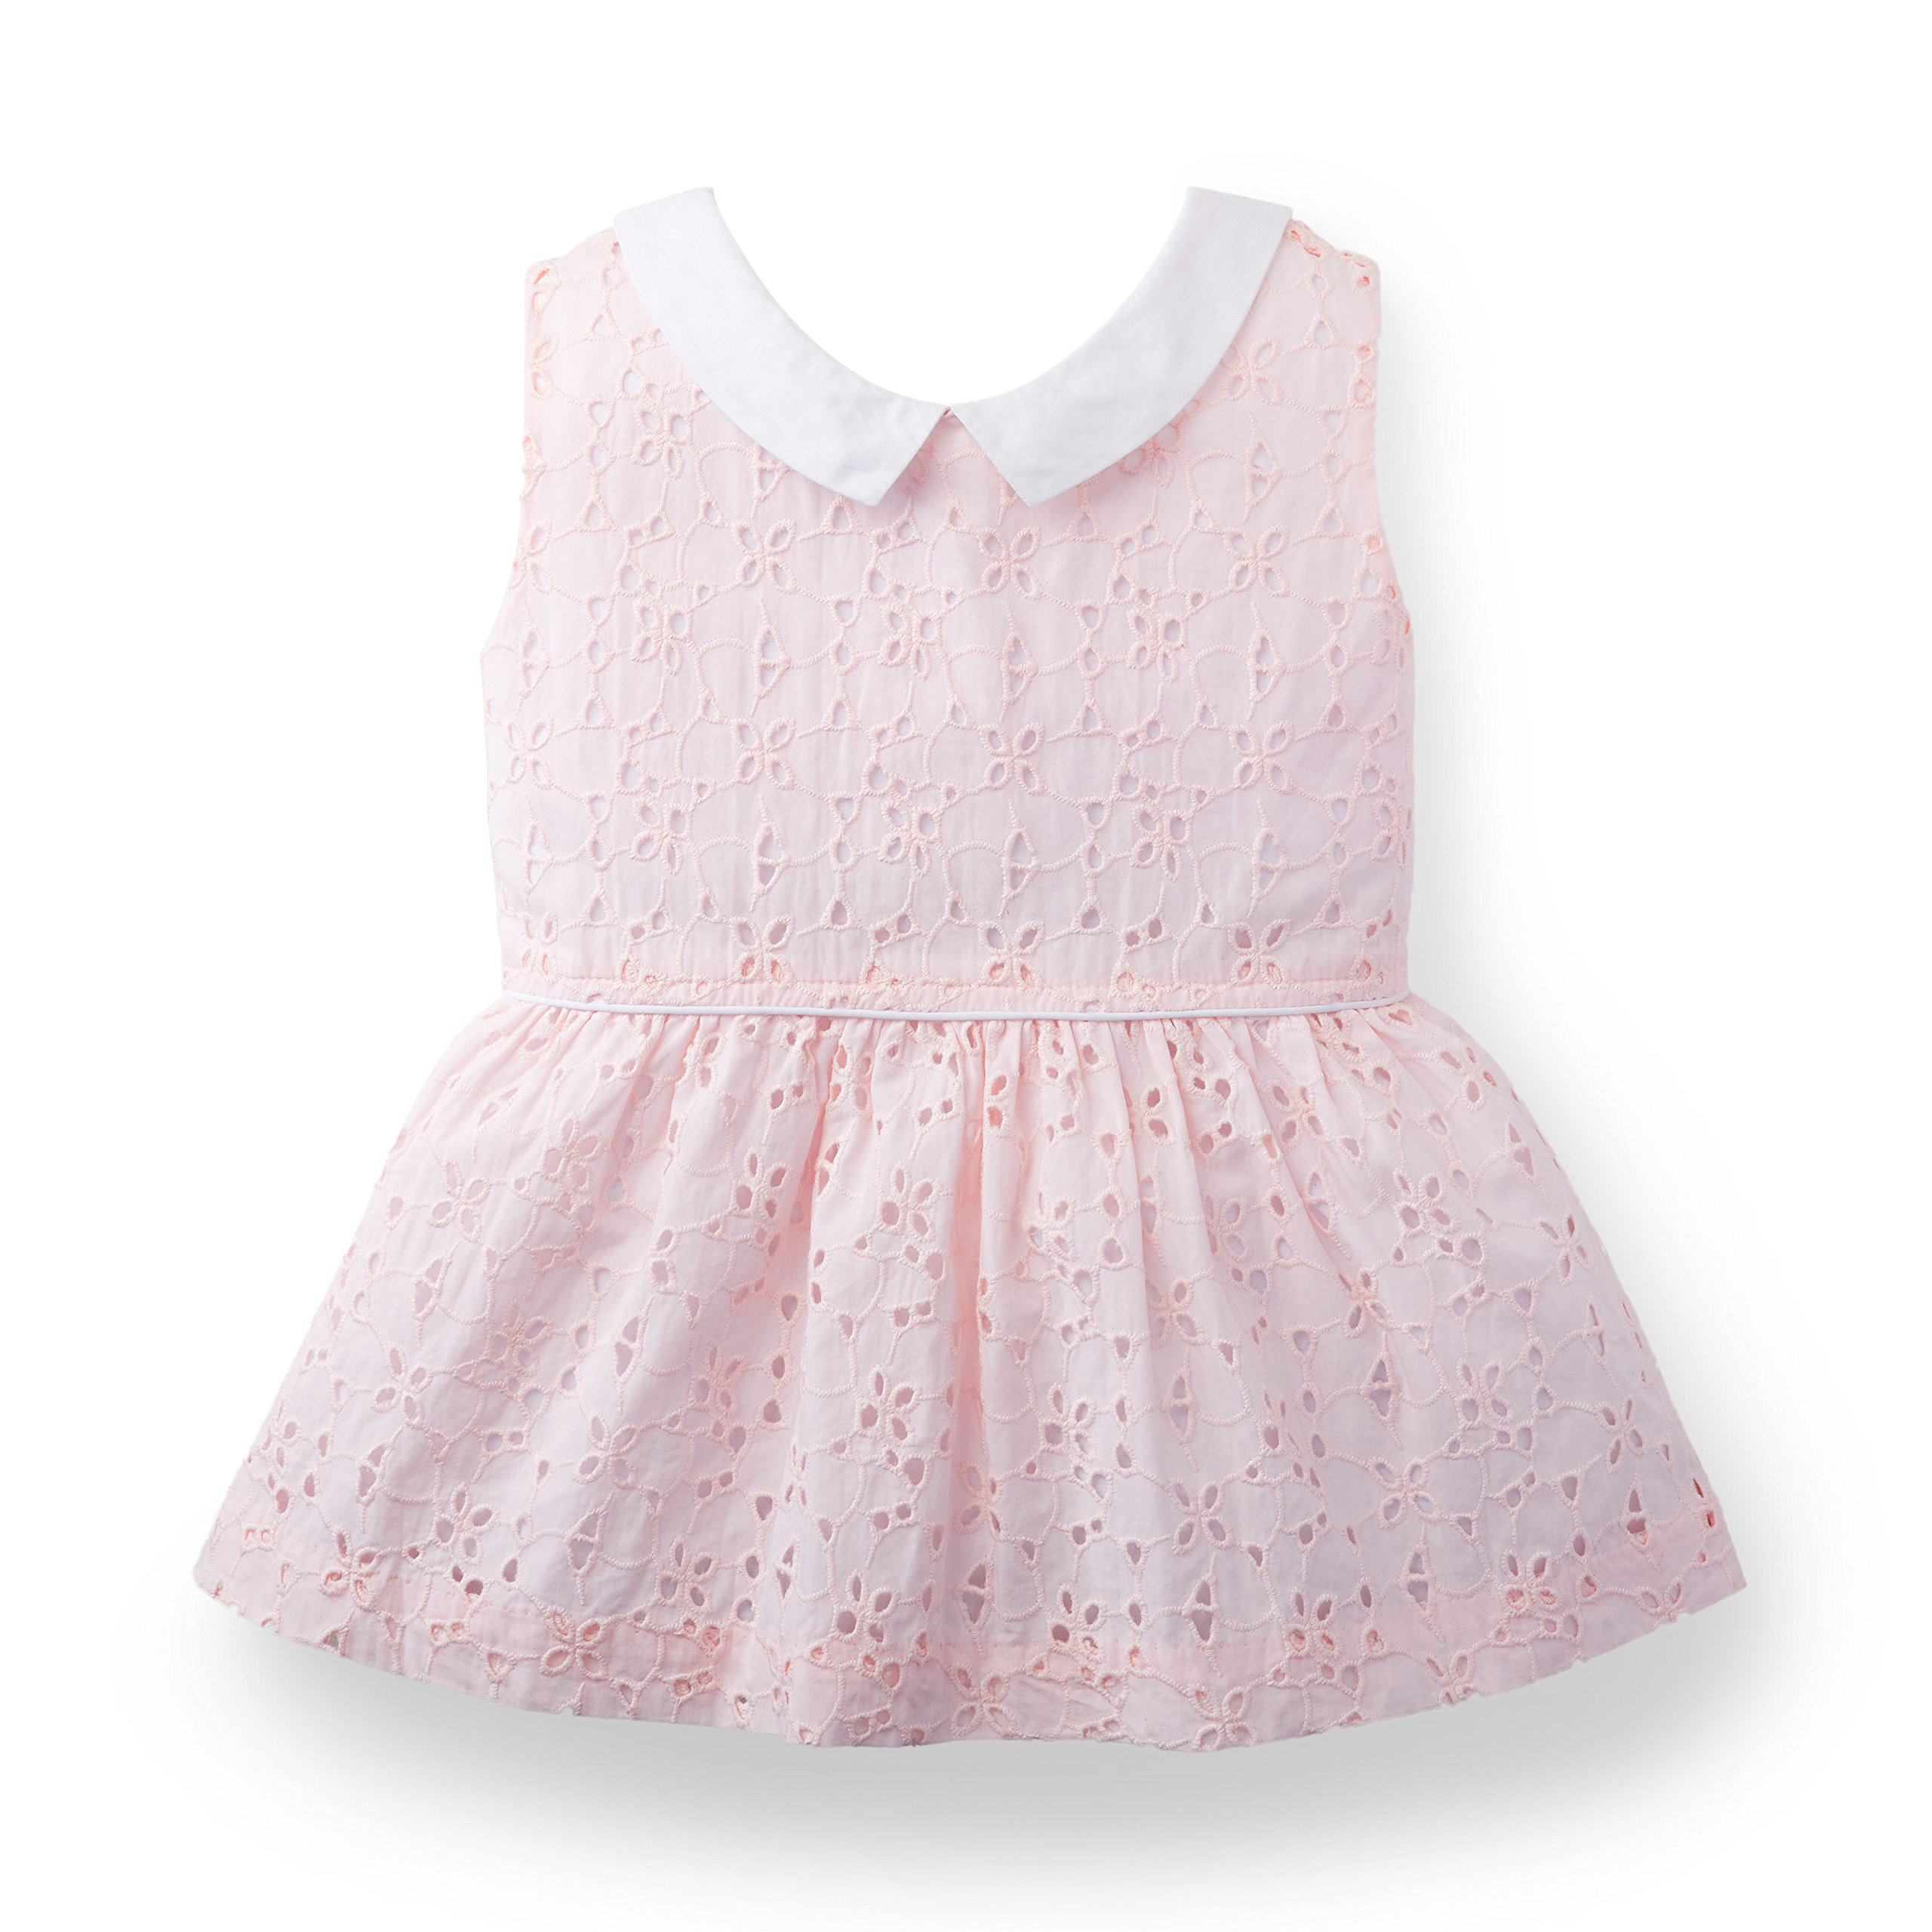 Hope & Henry Girls Eyelet Top Made With Organic